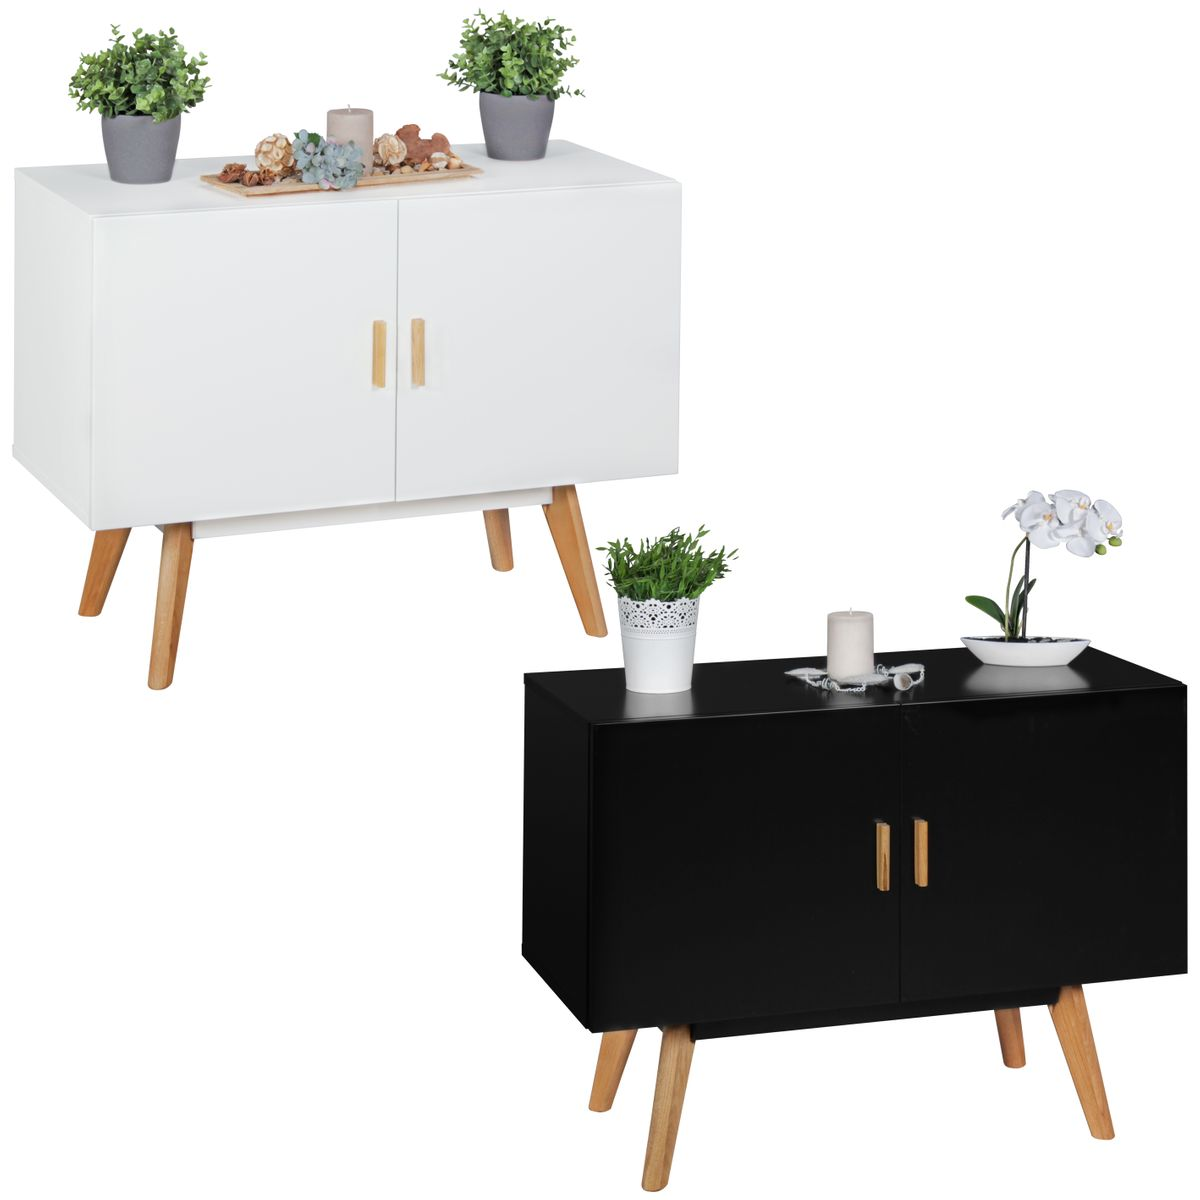 mdf buffet enfilade scanio 90 x 40 cm commode couloir hall meubles commode bois ebay. Black Bedroom Furniture Sets. Home Design Ideas